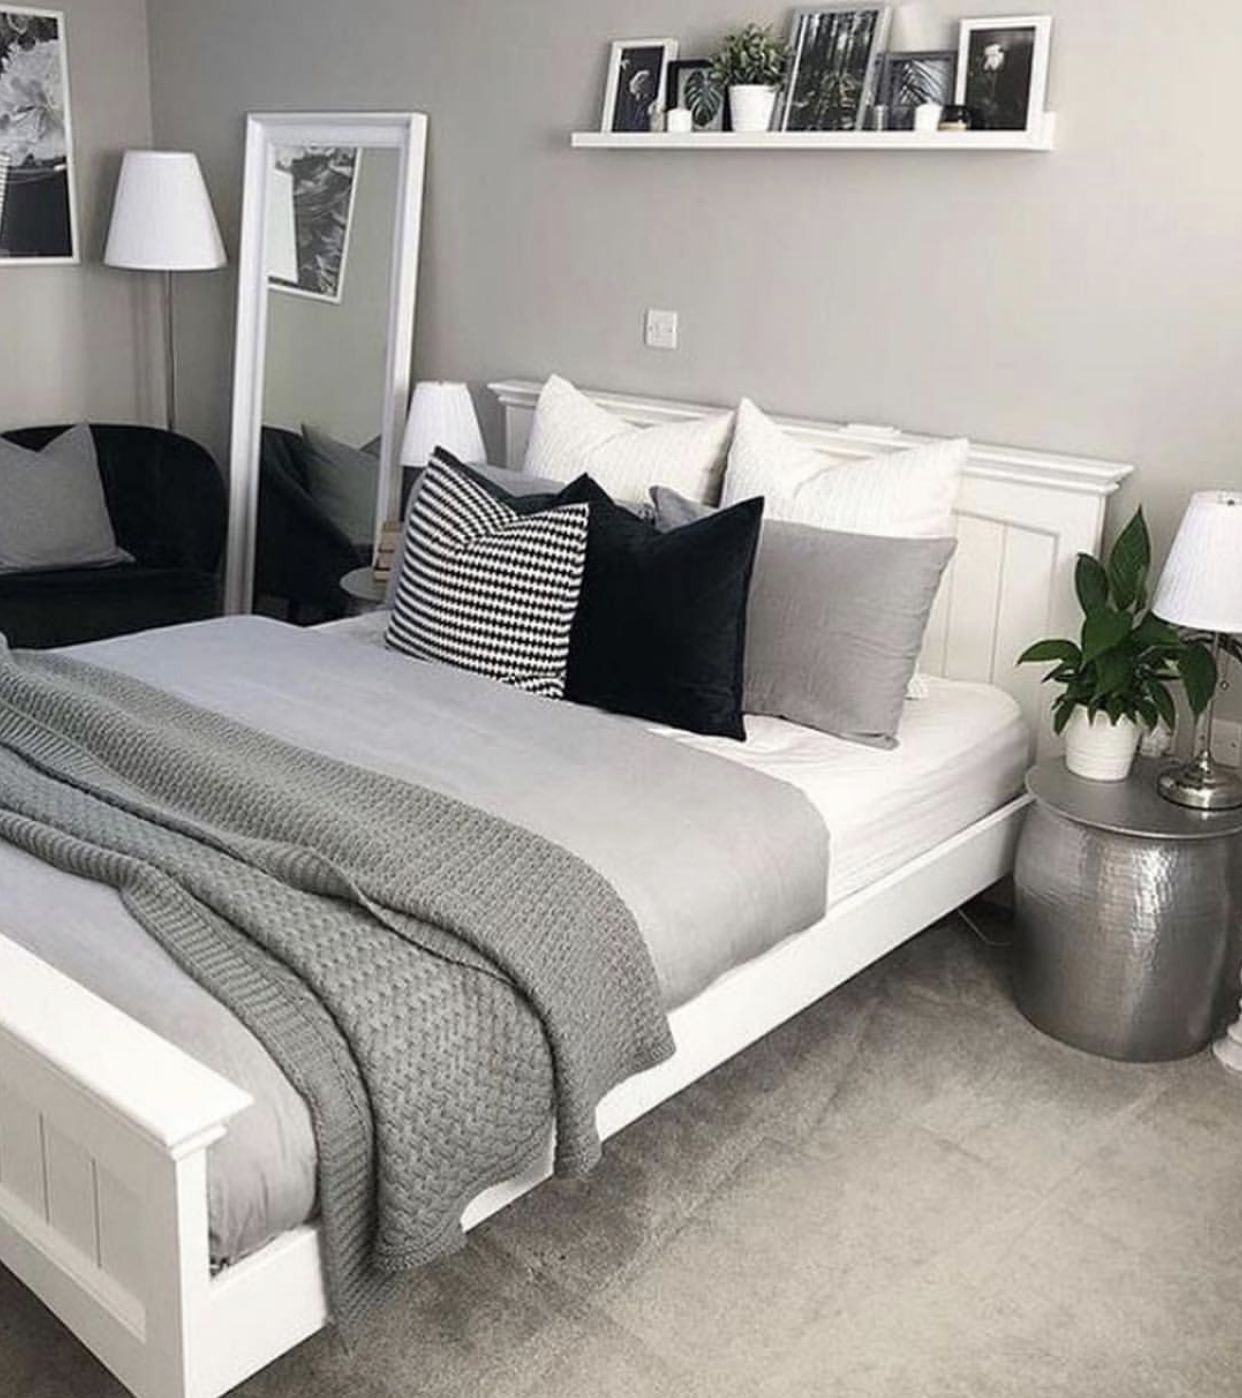 Pin By Alexia Love Moran On House Decoration Ideas Redecorate Bedroom Bedroom Interior Bedroom Furniture Layout